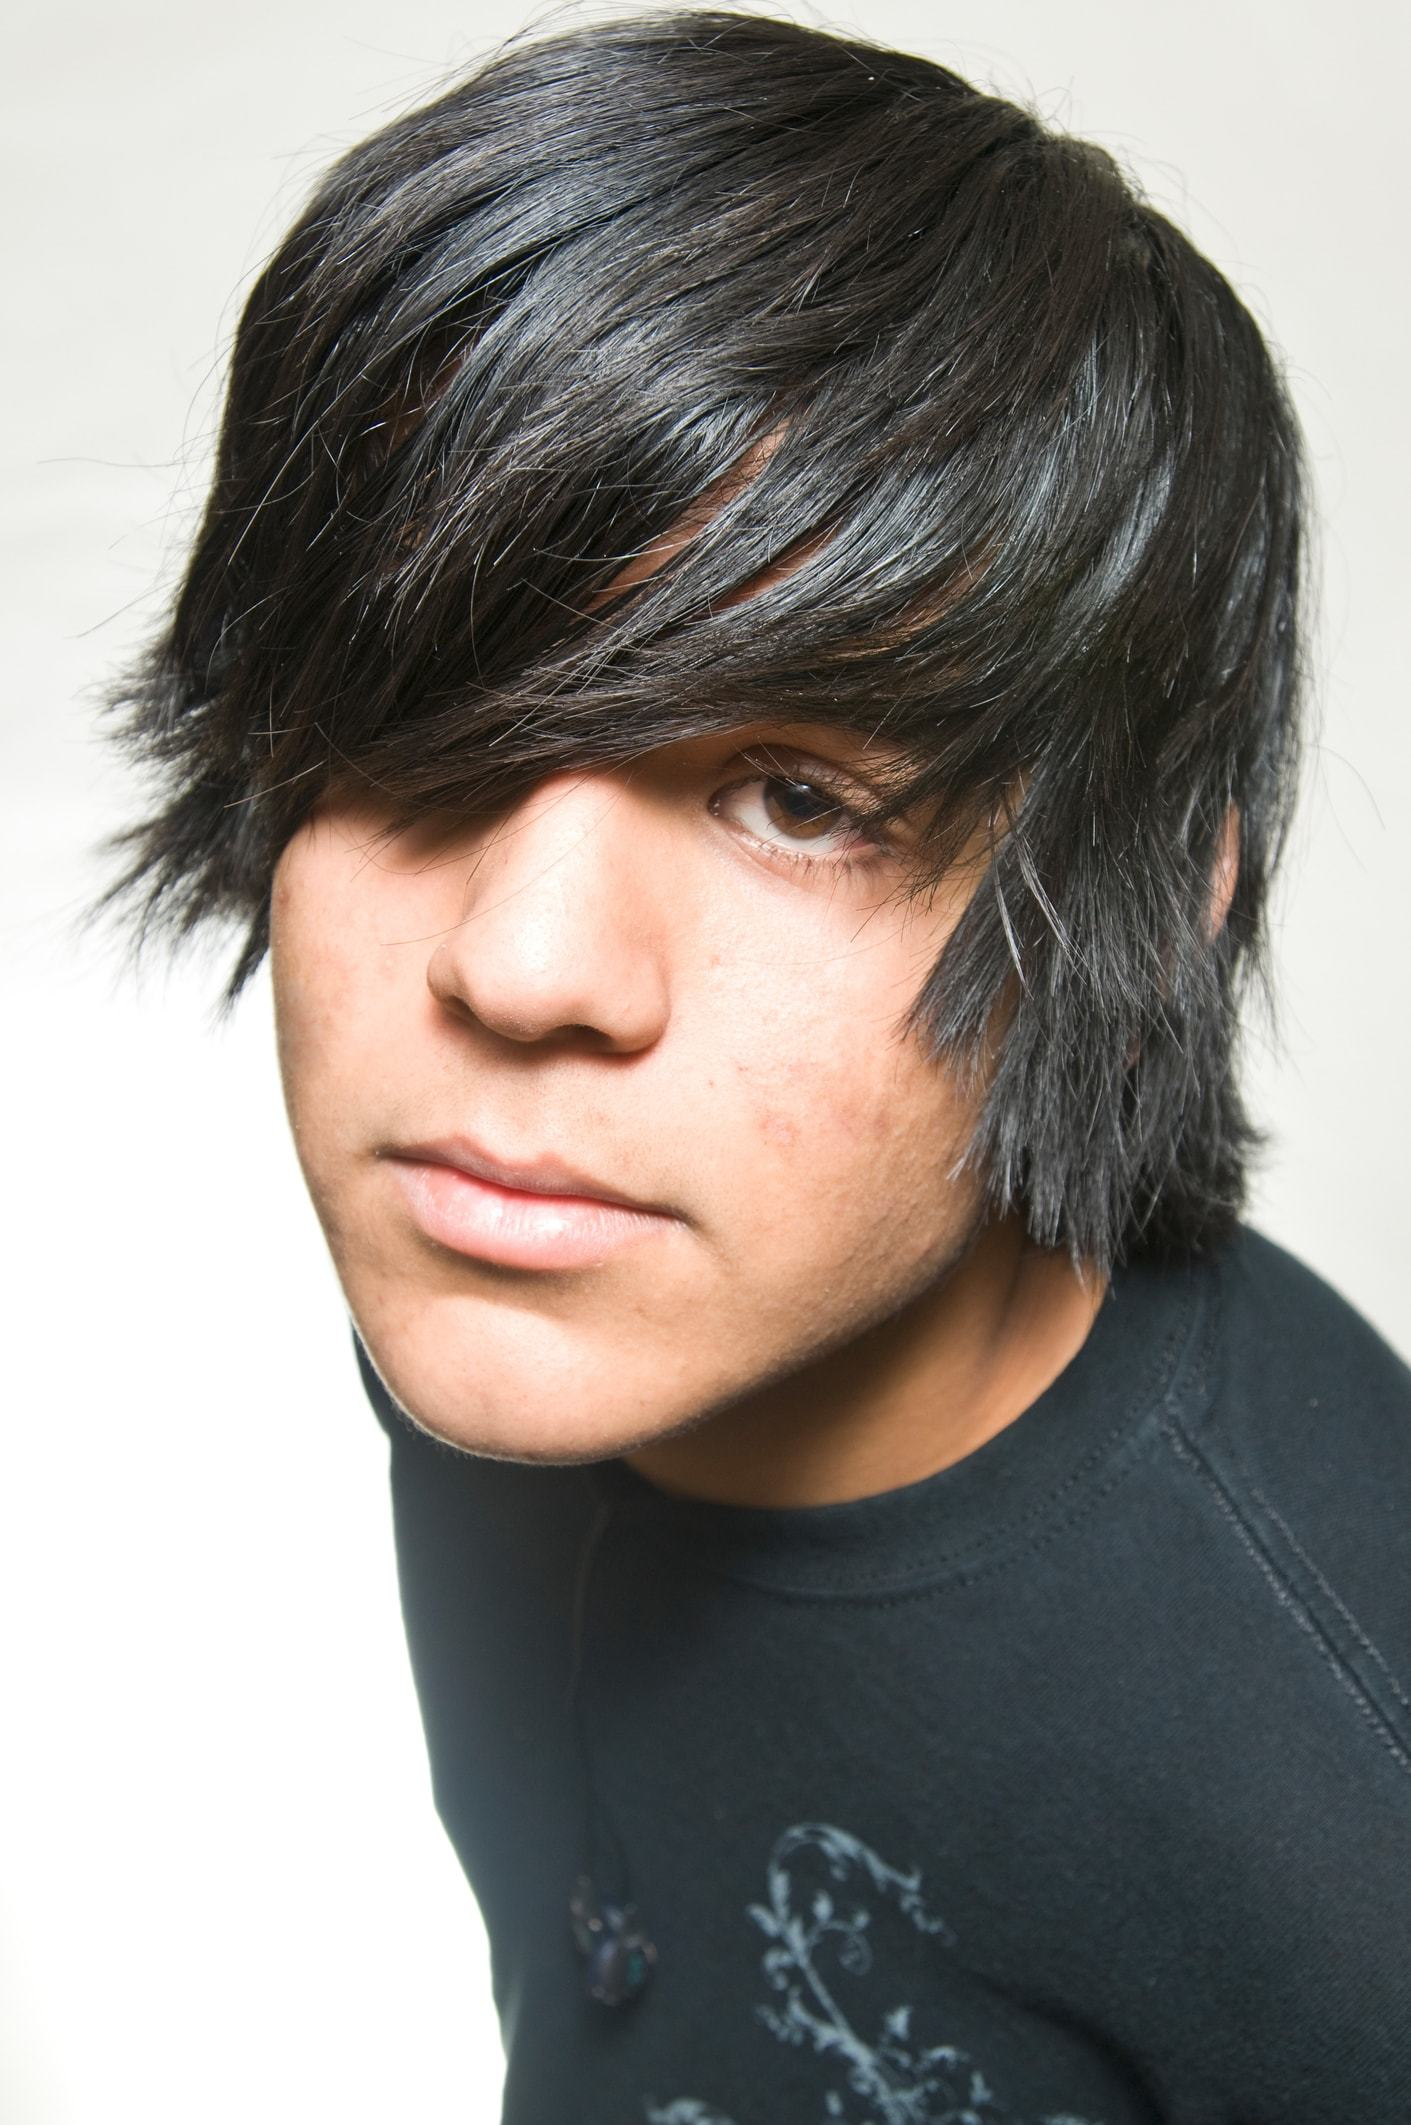 10 Best Emo Haircuts And Hairstyles For Guys In 2019